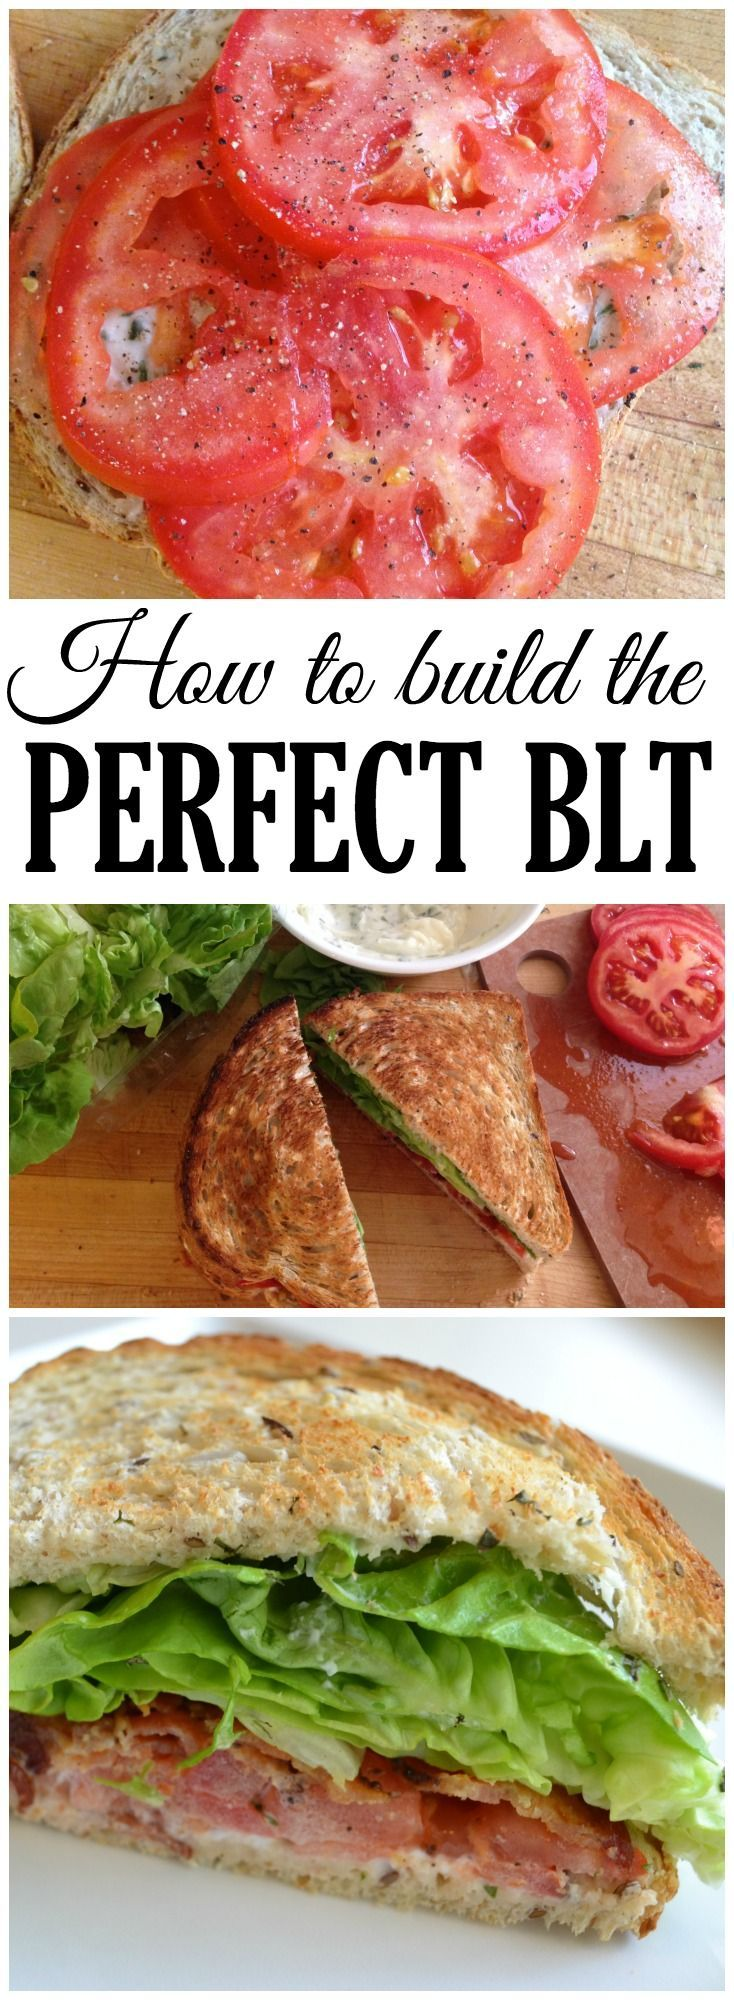 BLTs can be boring or completely amazing...it's all about the details! Follow these instructions and you'll make the best BLT ever.